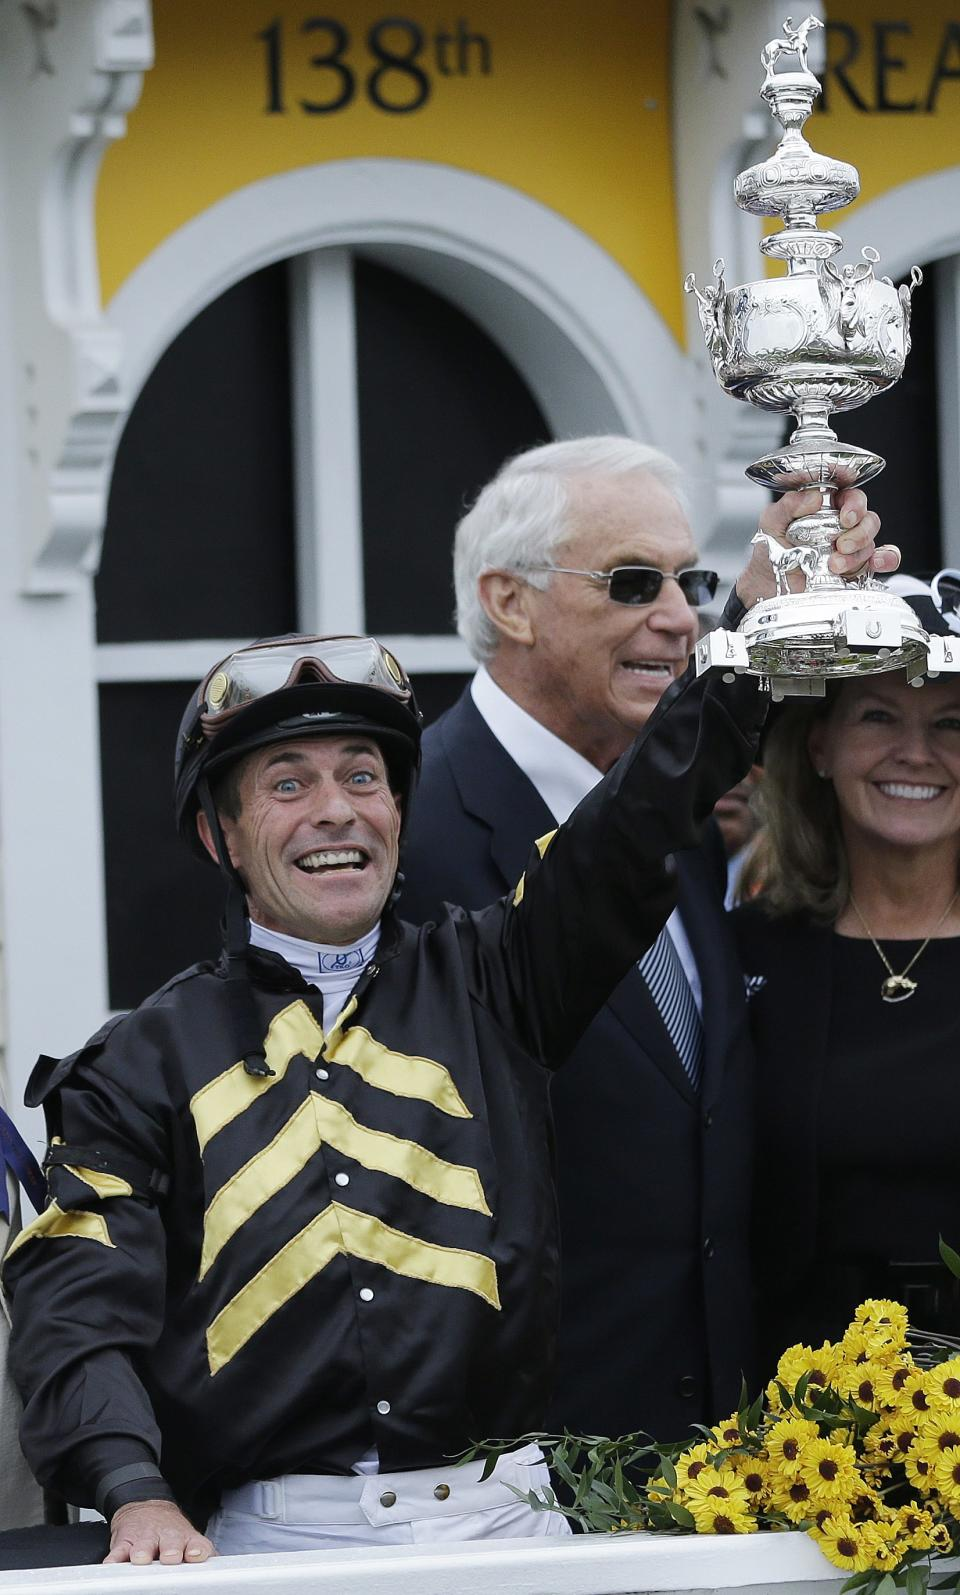 Jockey Gary Stevens holds up a trophy in the winner's circle after riding Oxbow to win the 138th Preakness Stakes horse race at Pimlico Race Course, Saturday, May 18, 2013, in Baltimore. (AP Photo/Matt Slocum)